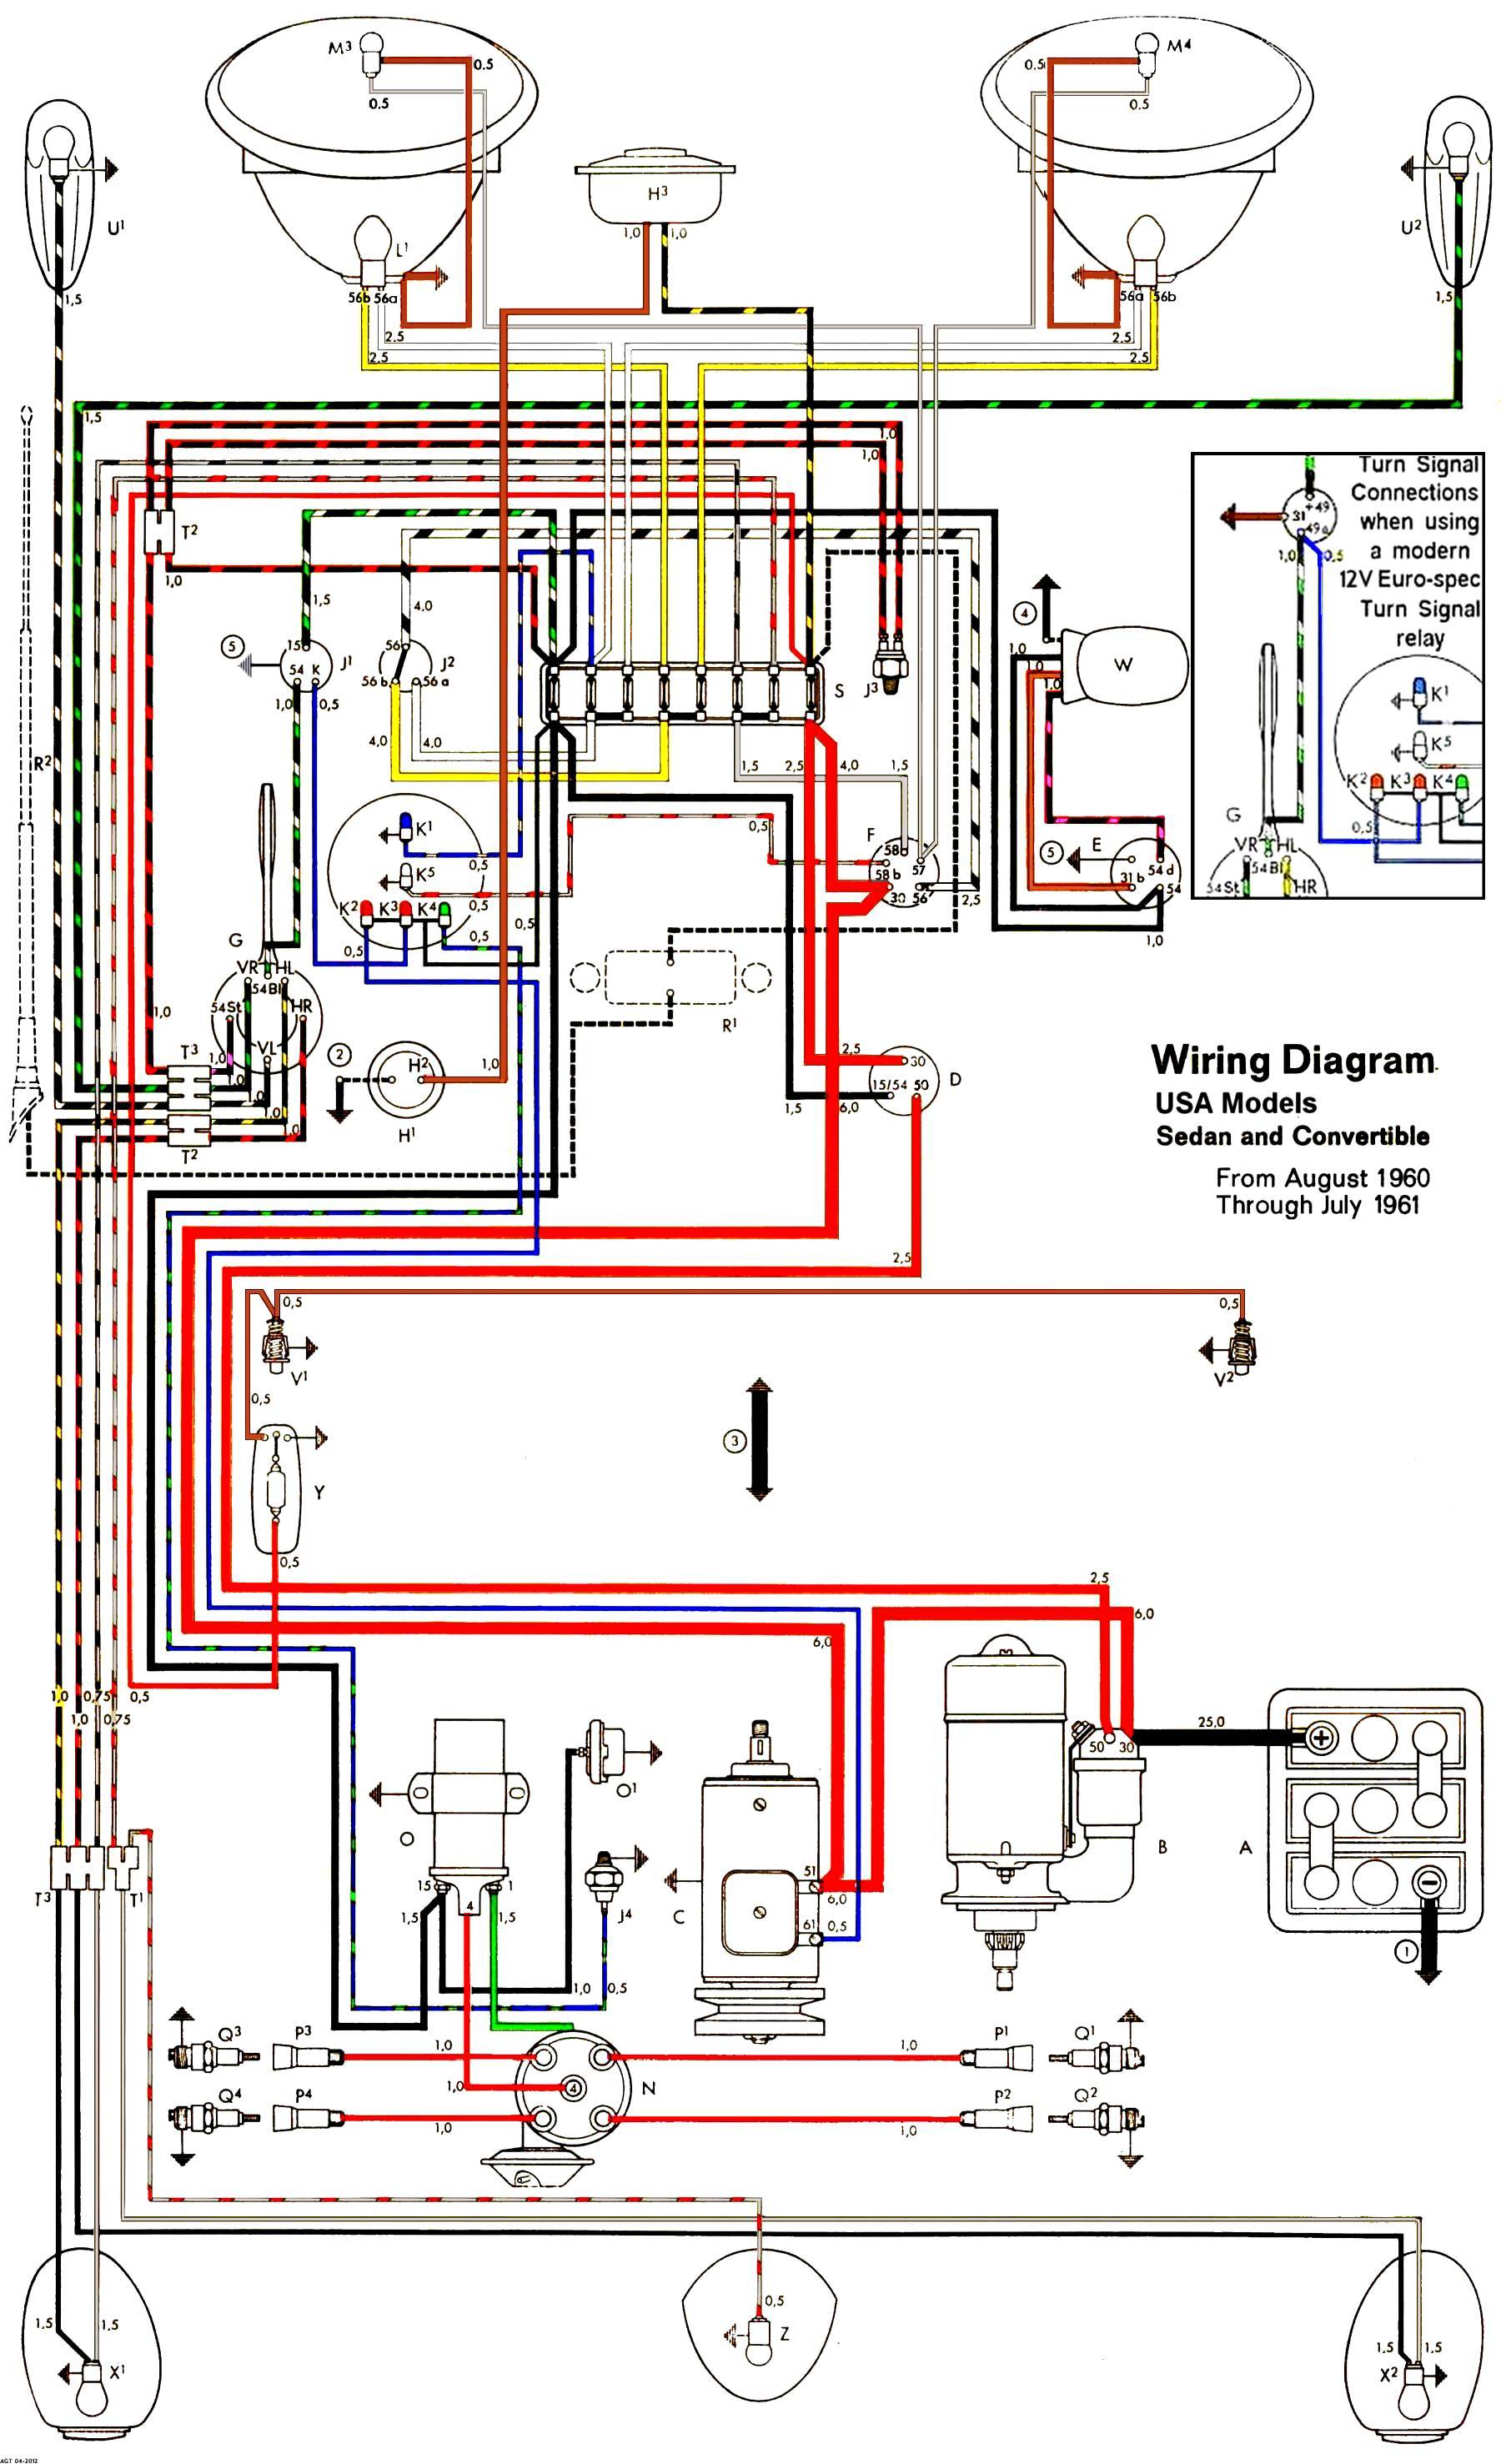 vw wiring diagram alternator 50 amp gfci breaker 74 mopar get free image about